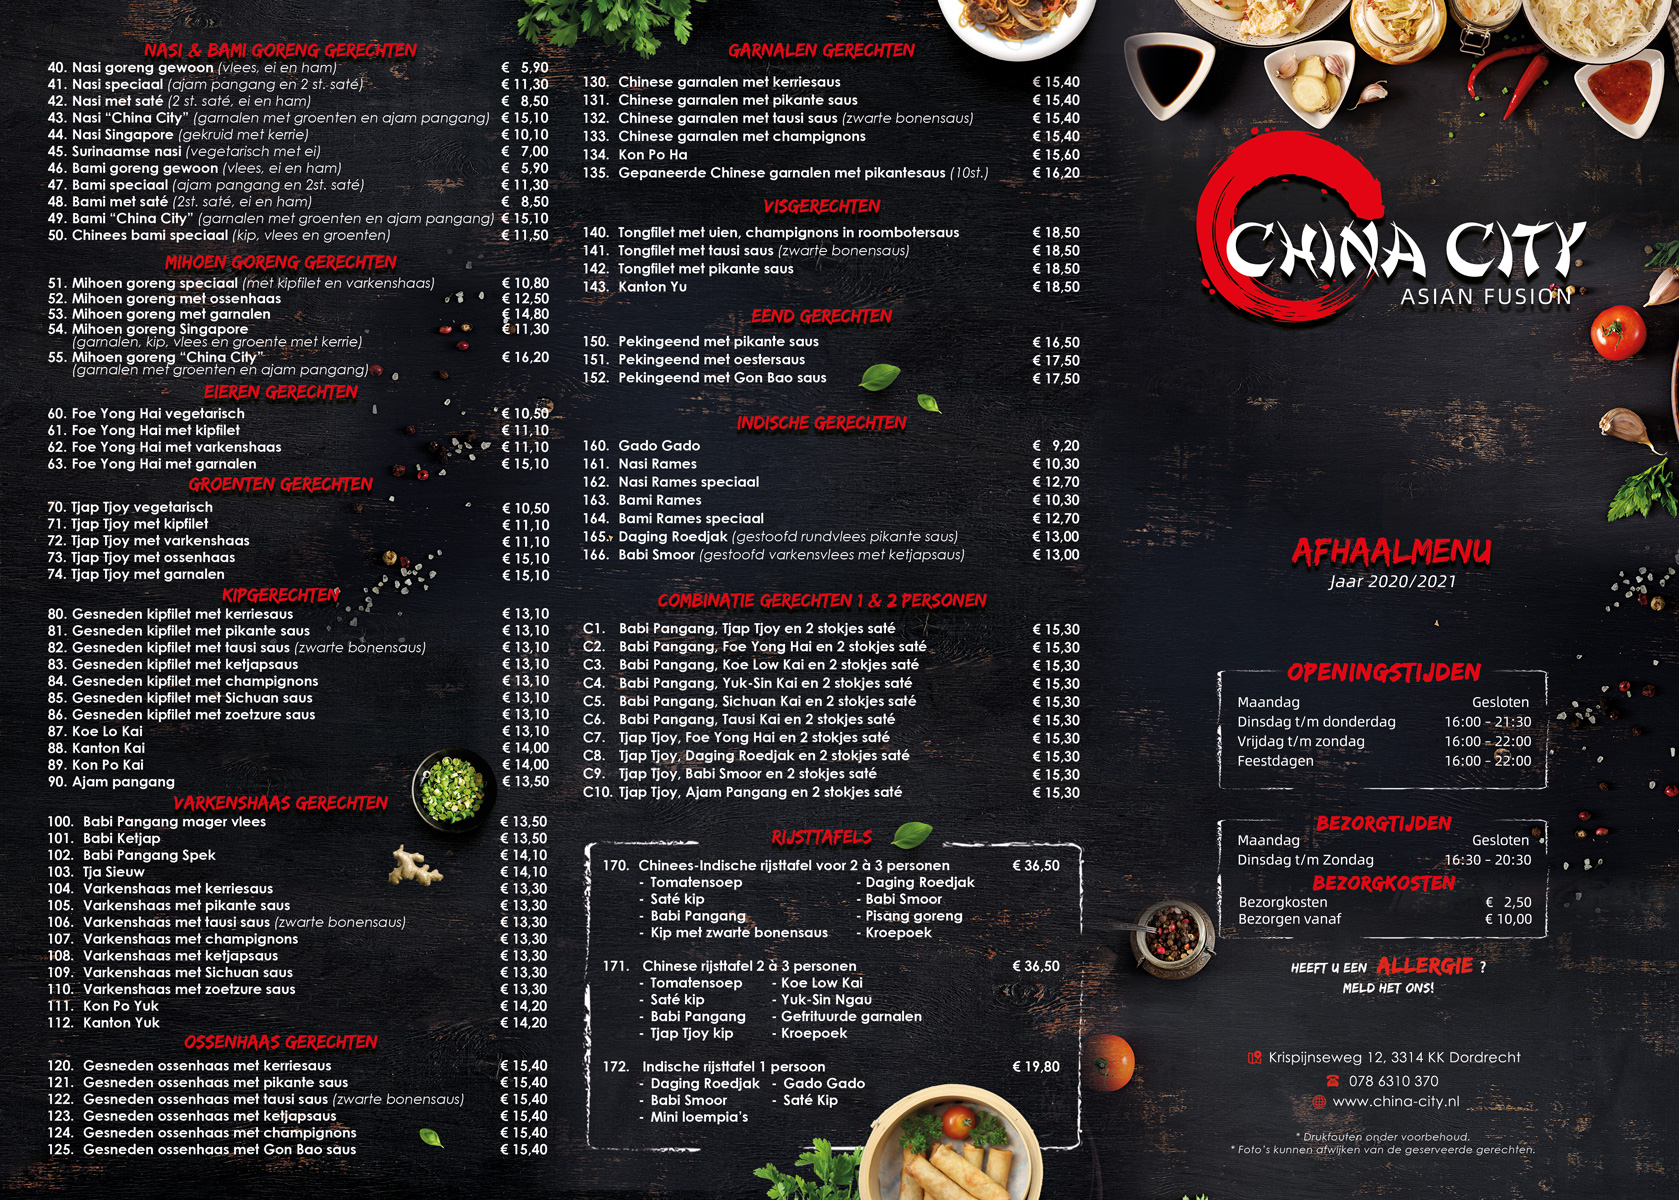 china-city-wok-grill-sushi-all-you-can-eat-dordrecht-afhaal-menu-11